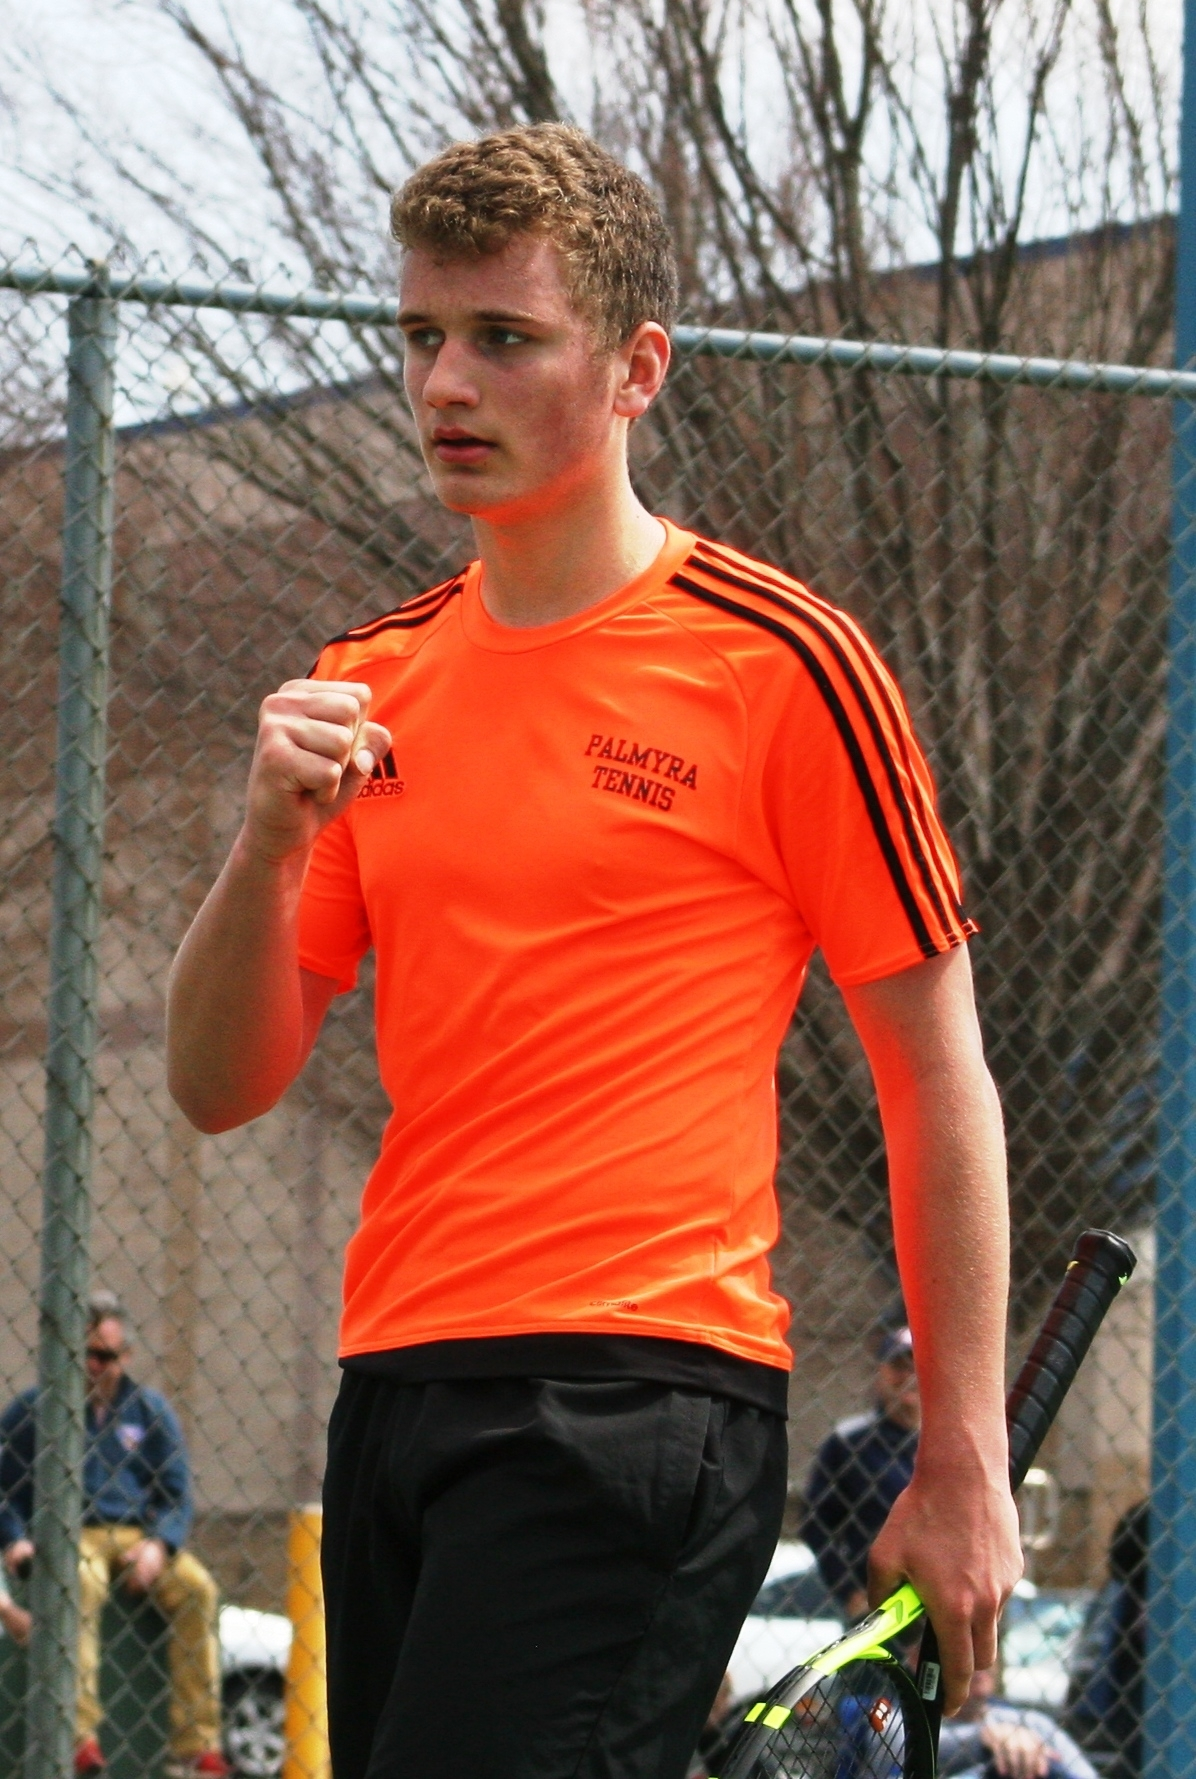 Lebanon County boys' tennis tournament 084